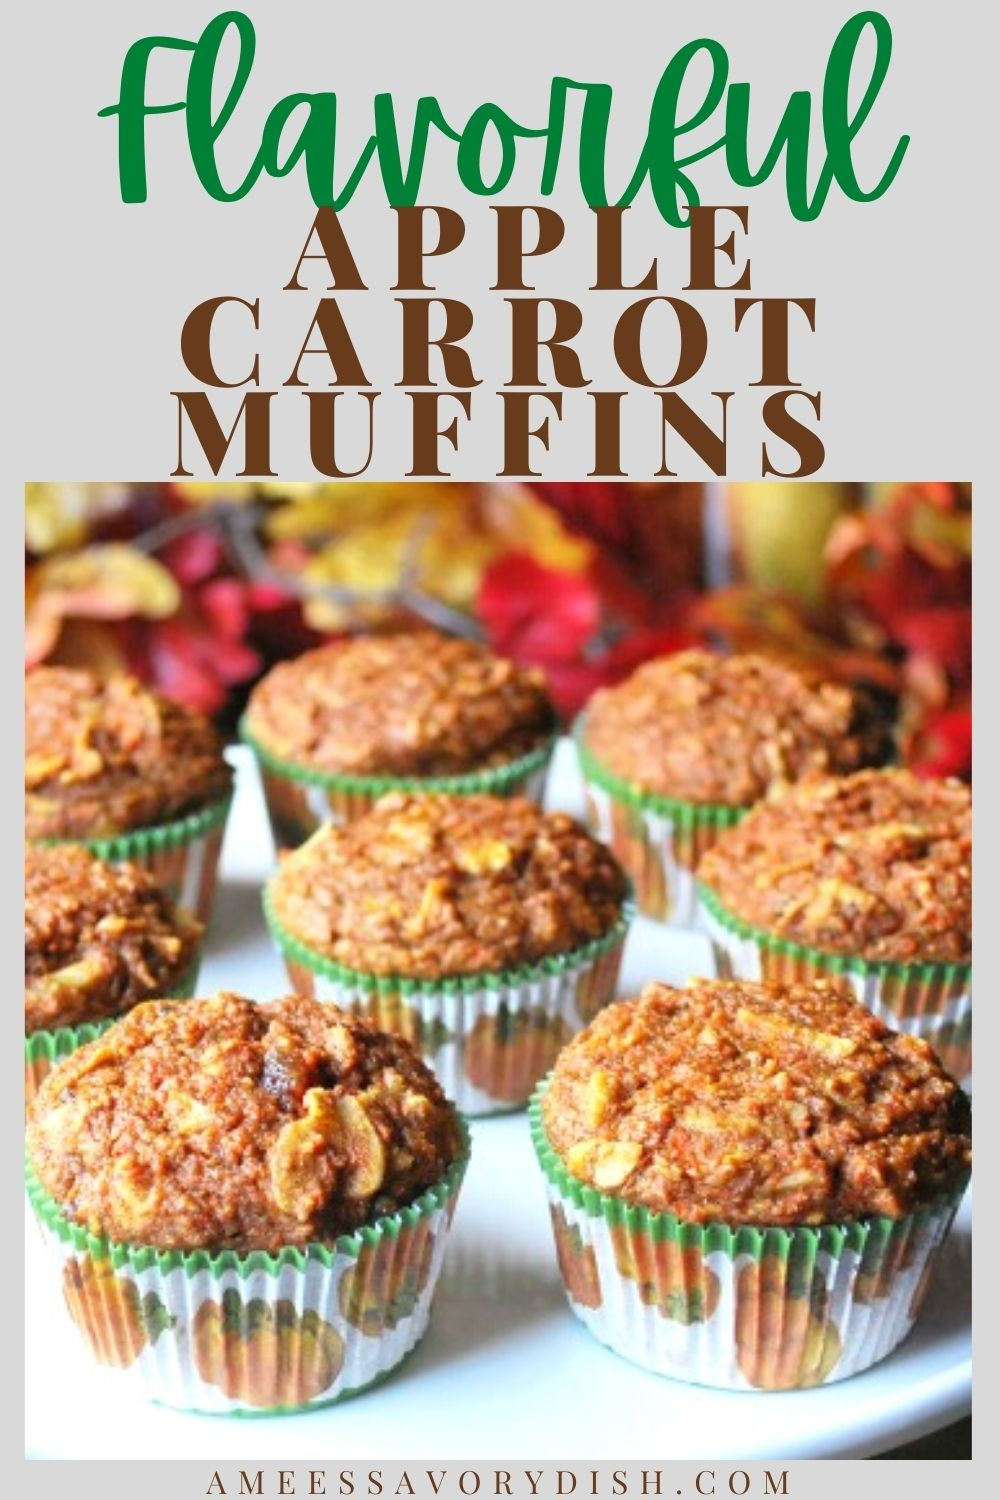 A healthy and flavorful recipe for Apple Carrot Muffins utilizing the best of the fall harvest made with carrots, dates, raisins, apples, pumpkin, and spices #muffins #fallmuffins #applemuffins #carrotmuffins #harvestmuffins via @Ameessavorydish